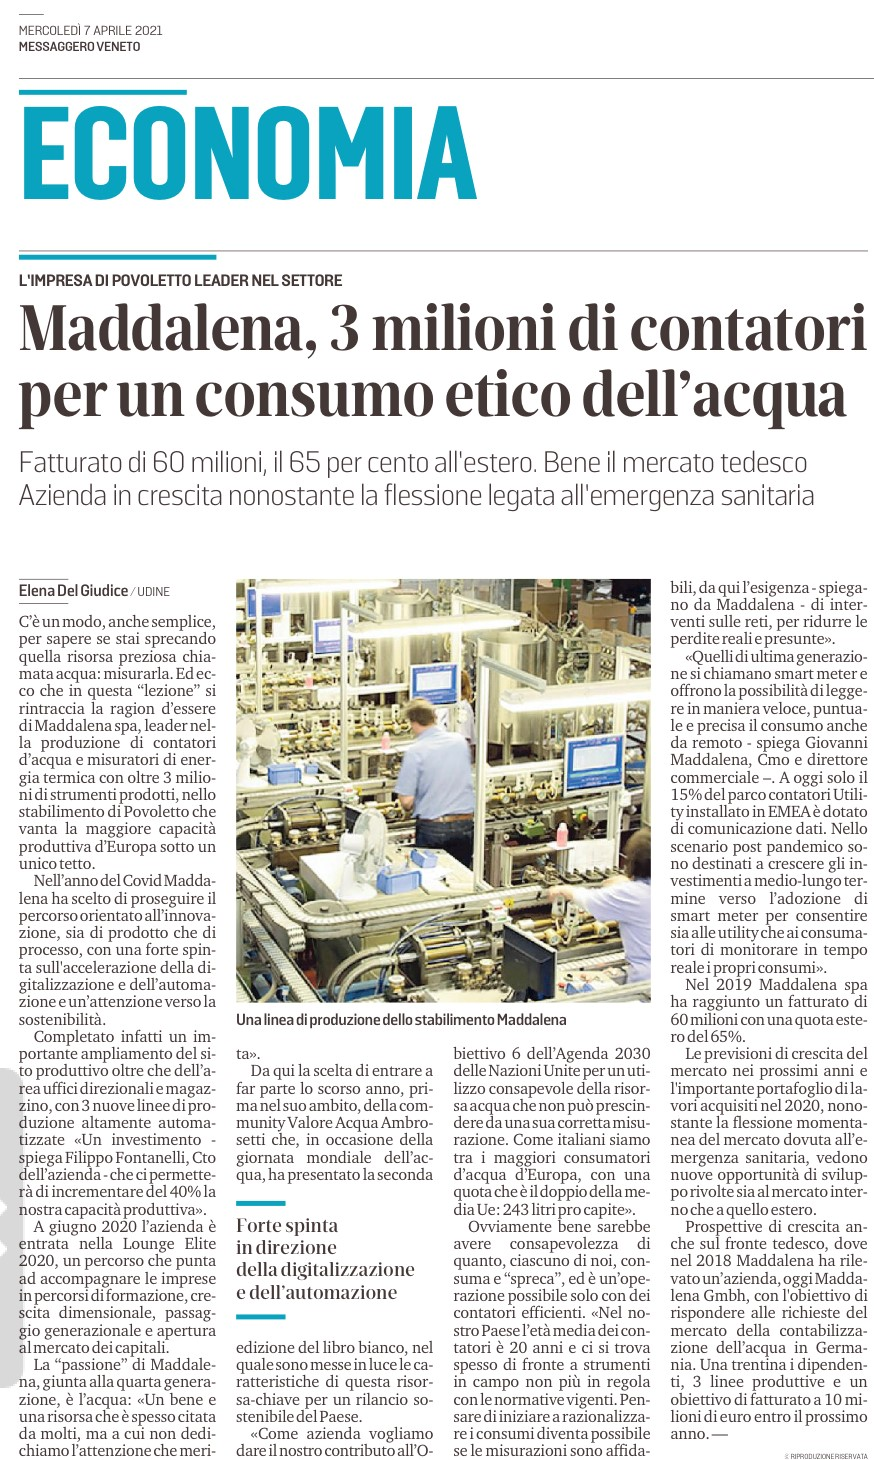 Messaggero Veneto Economy | April 07 2021 Maddalena, 3 million meters for ethical water consumption